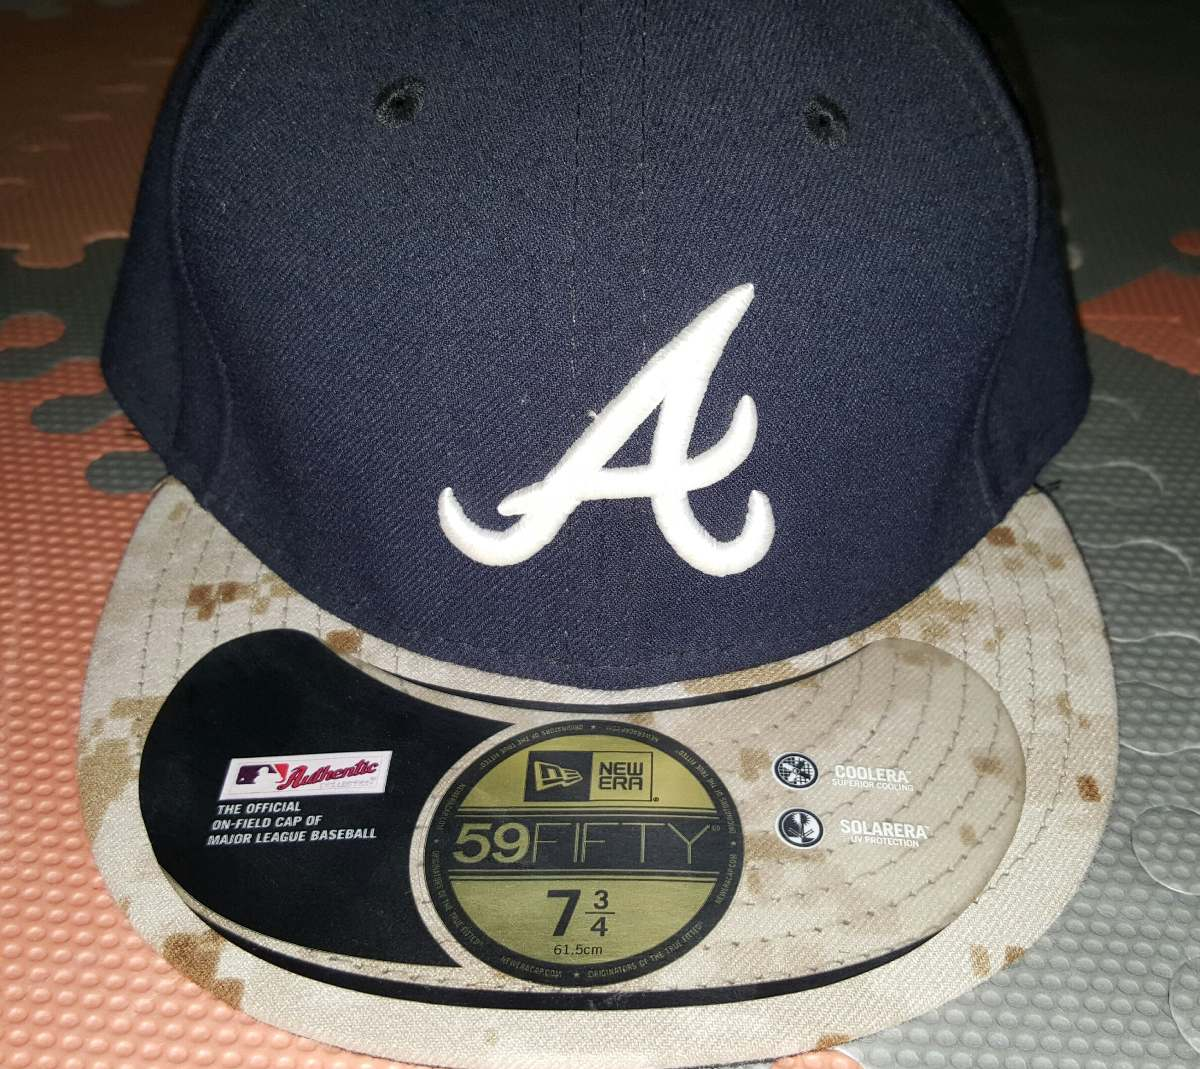 Gorra Atlanta Braves 7 3 4   61 Cm New Era -   400.00 en Mercado Libre 030c7b231bd